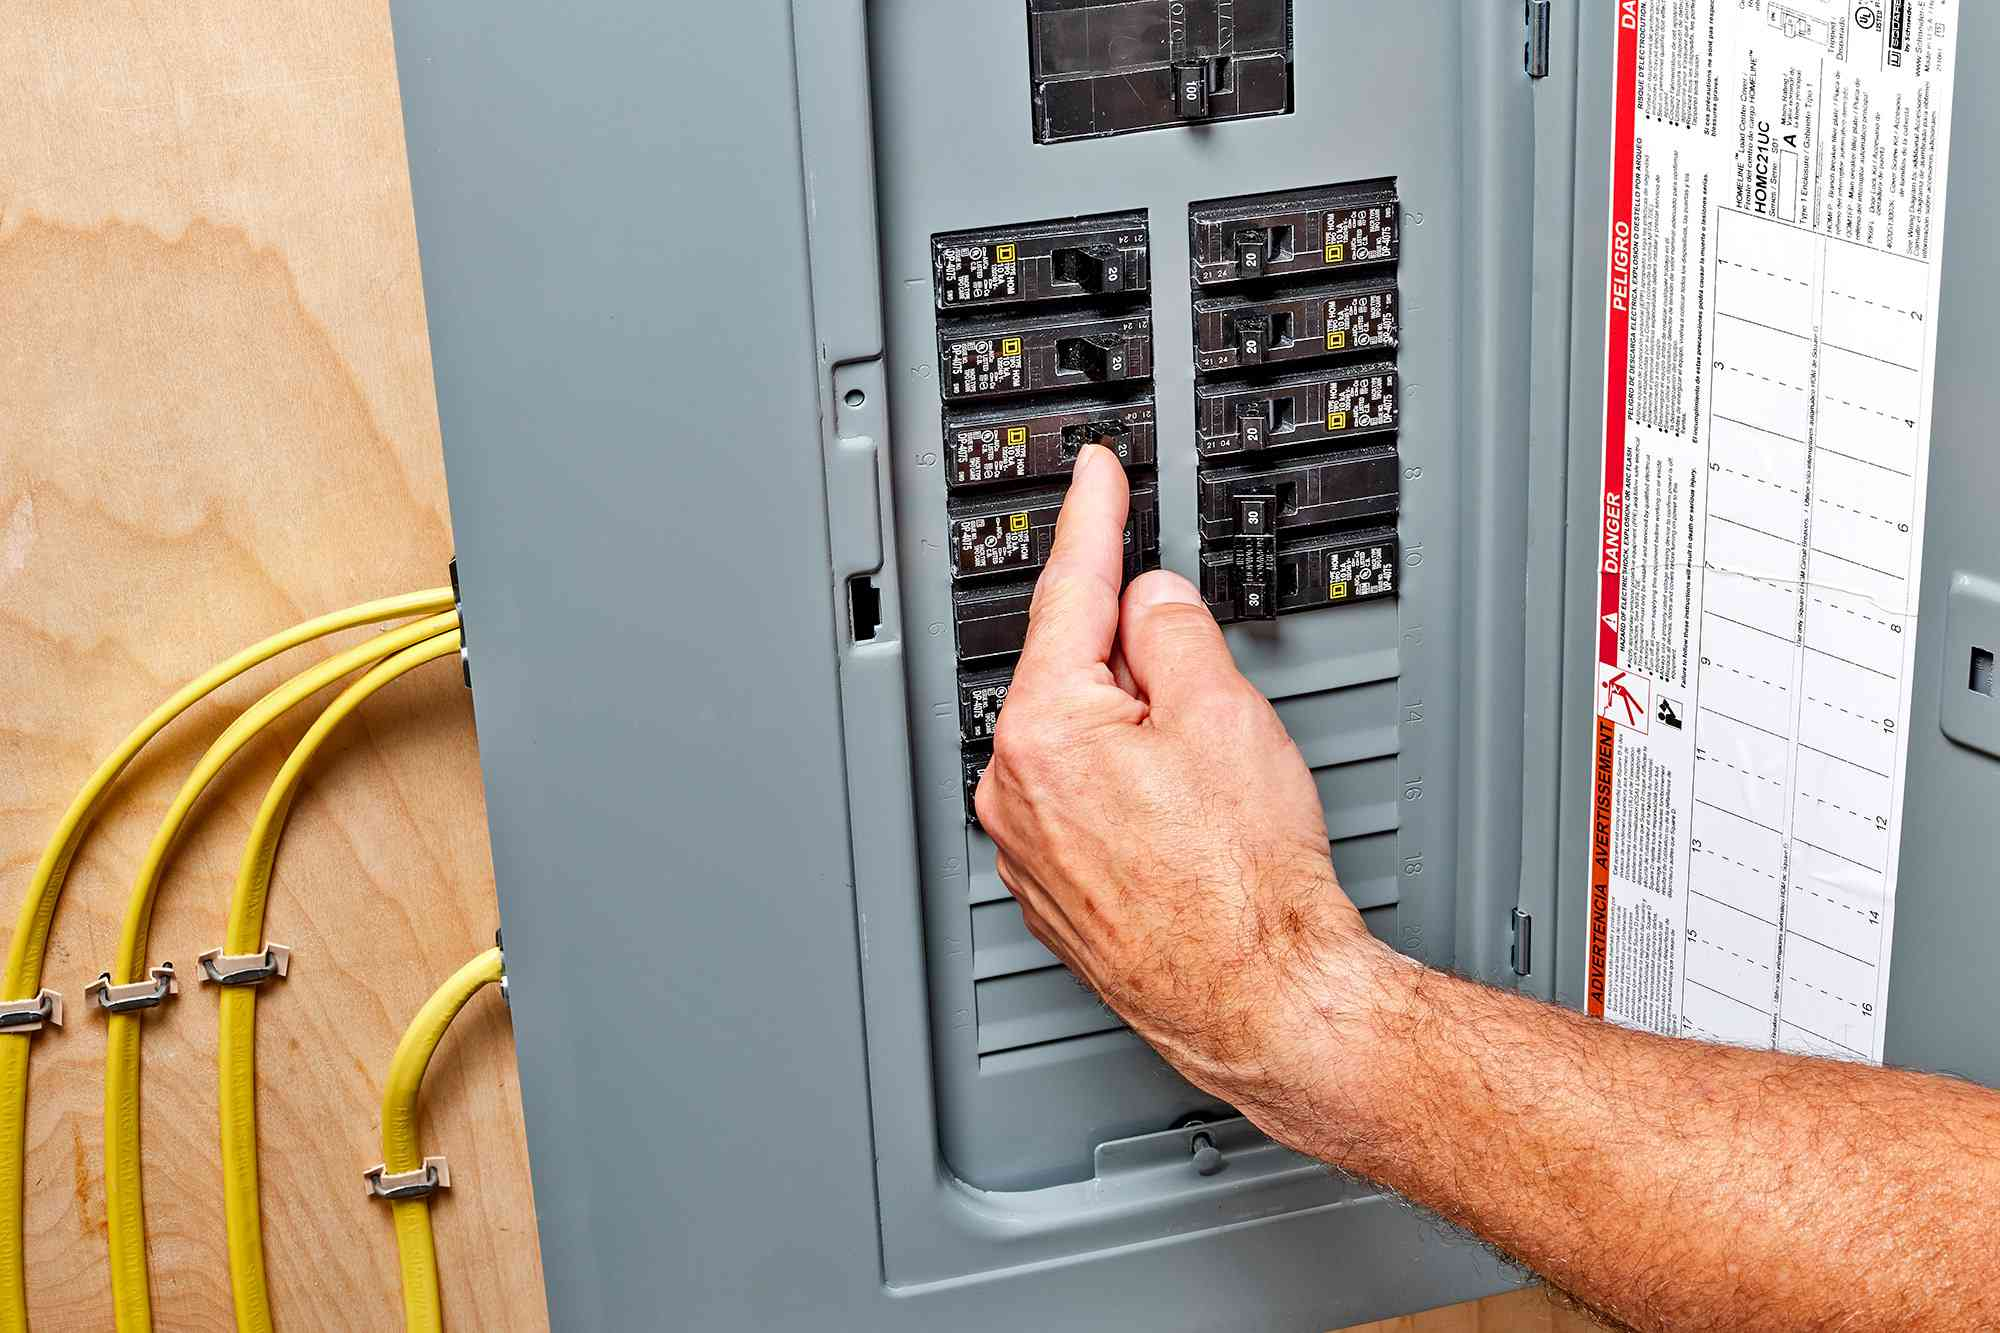 Circuit breaker switch turned on to restore power